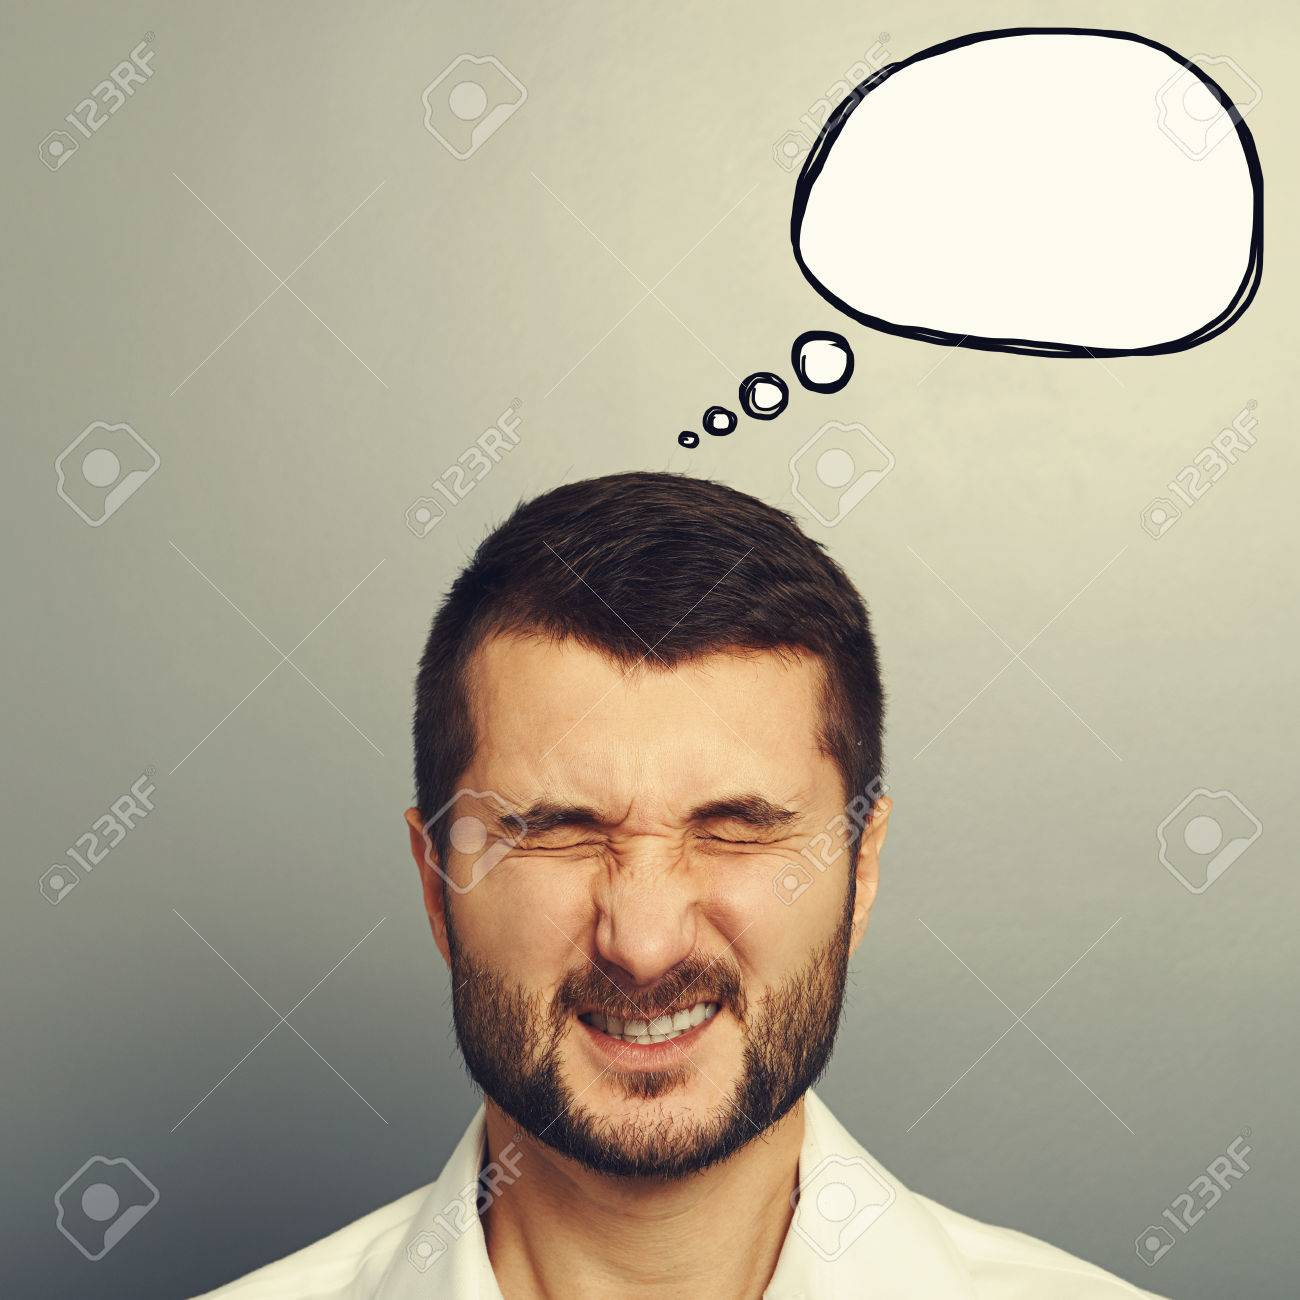 emotional man with drawing speech bubble over grey background Stock Photo - 30834581